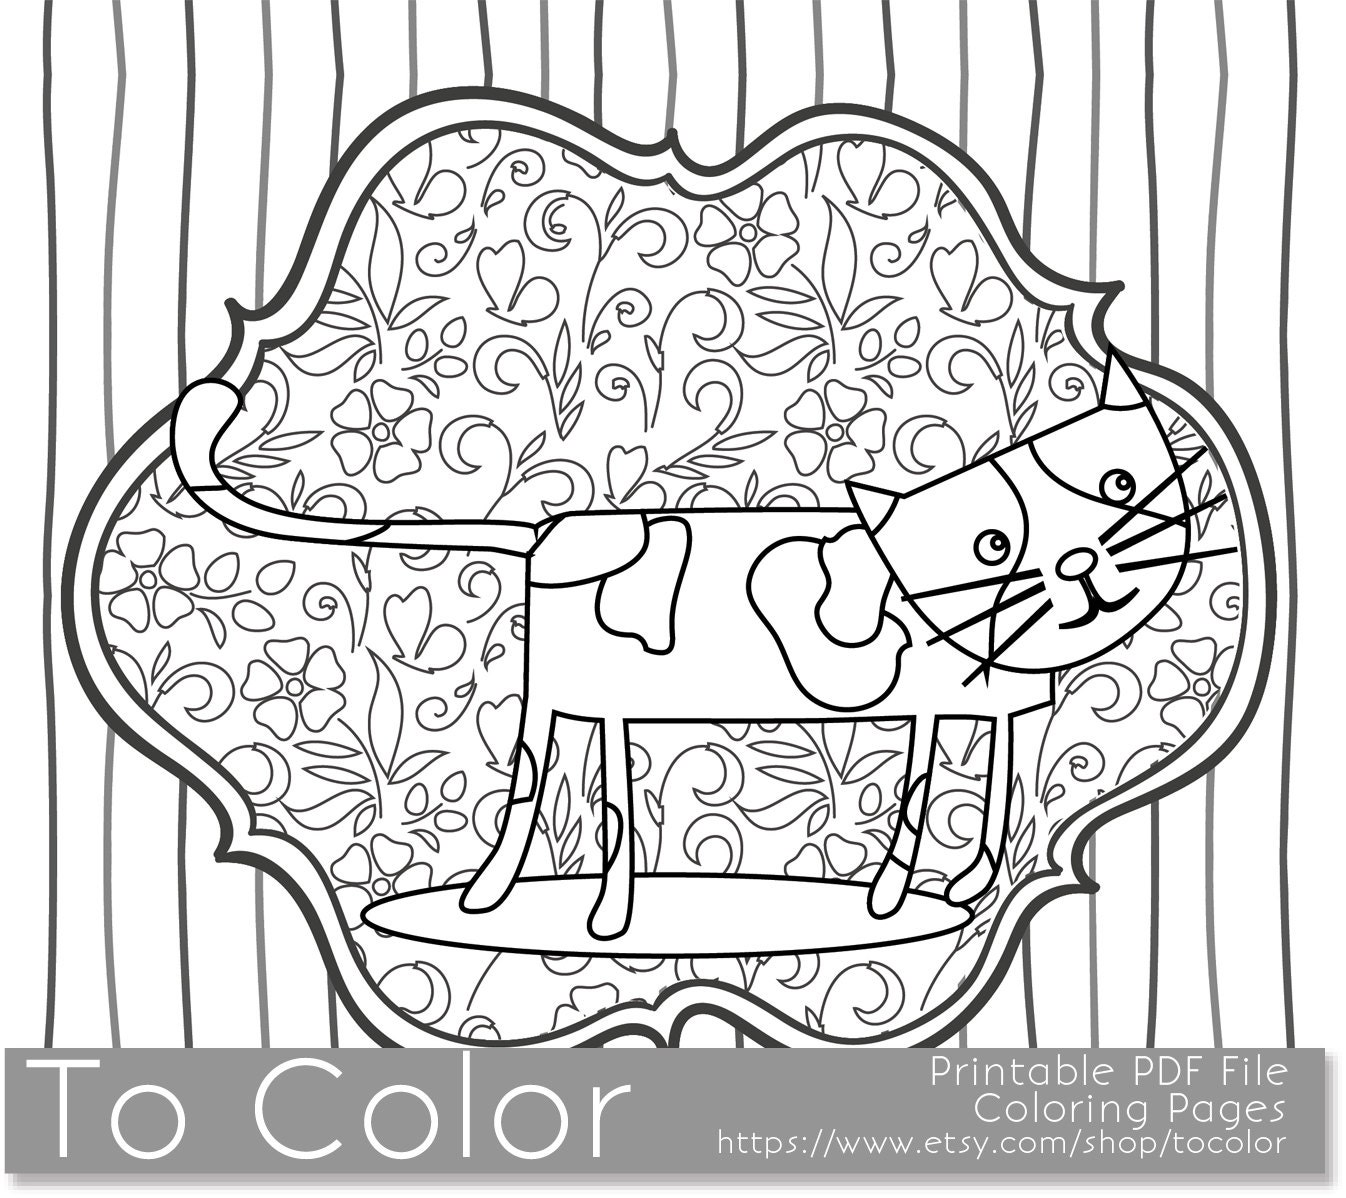 whimsical flowers coloring pages - photo#31